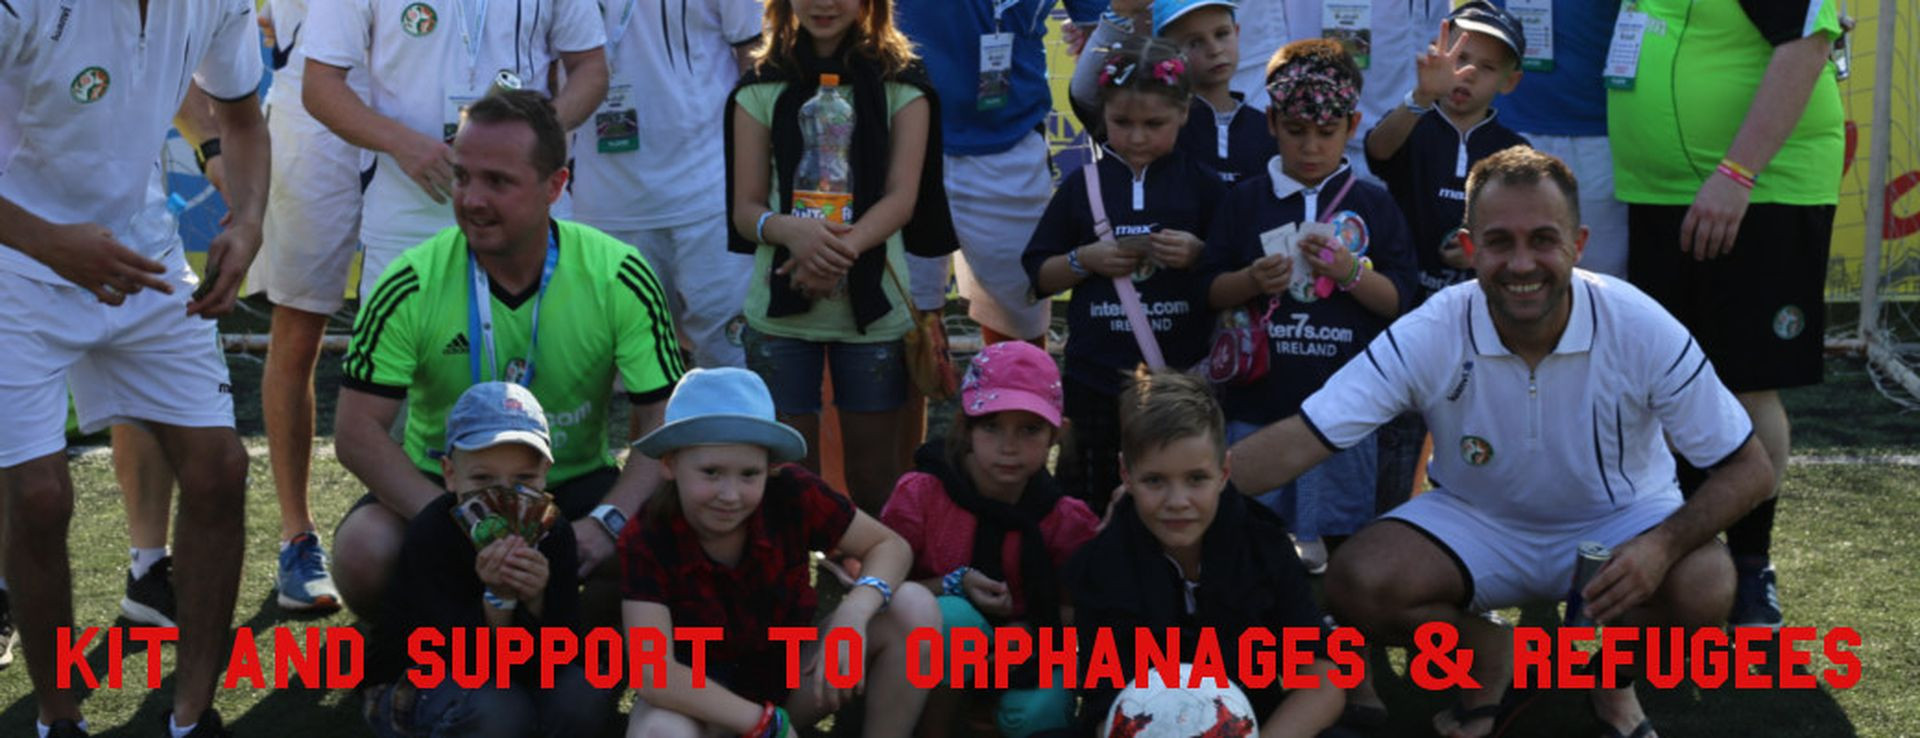 2019 M33 Image 008 Orphanages